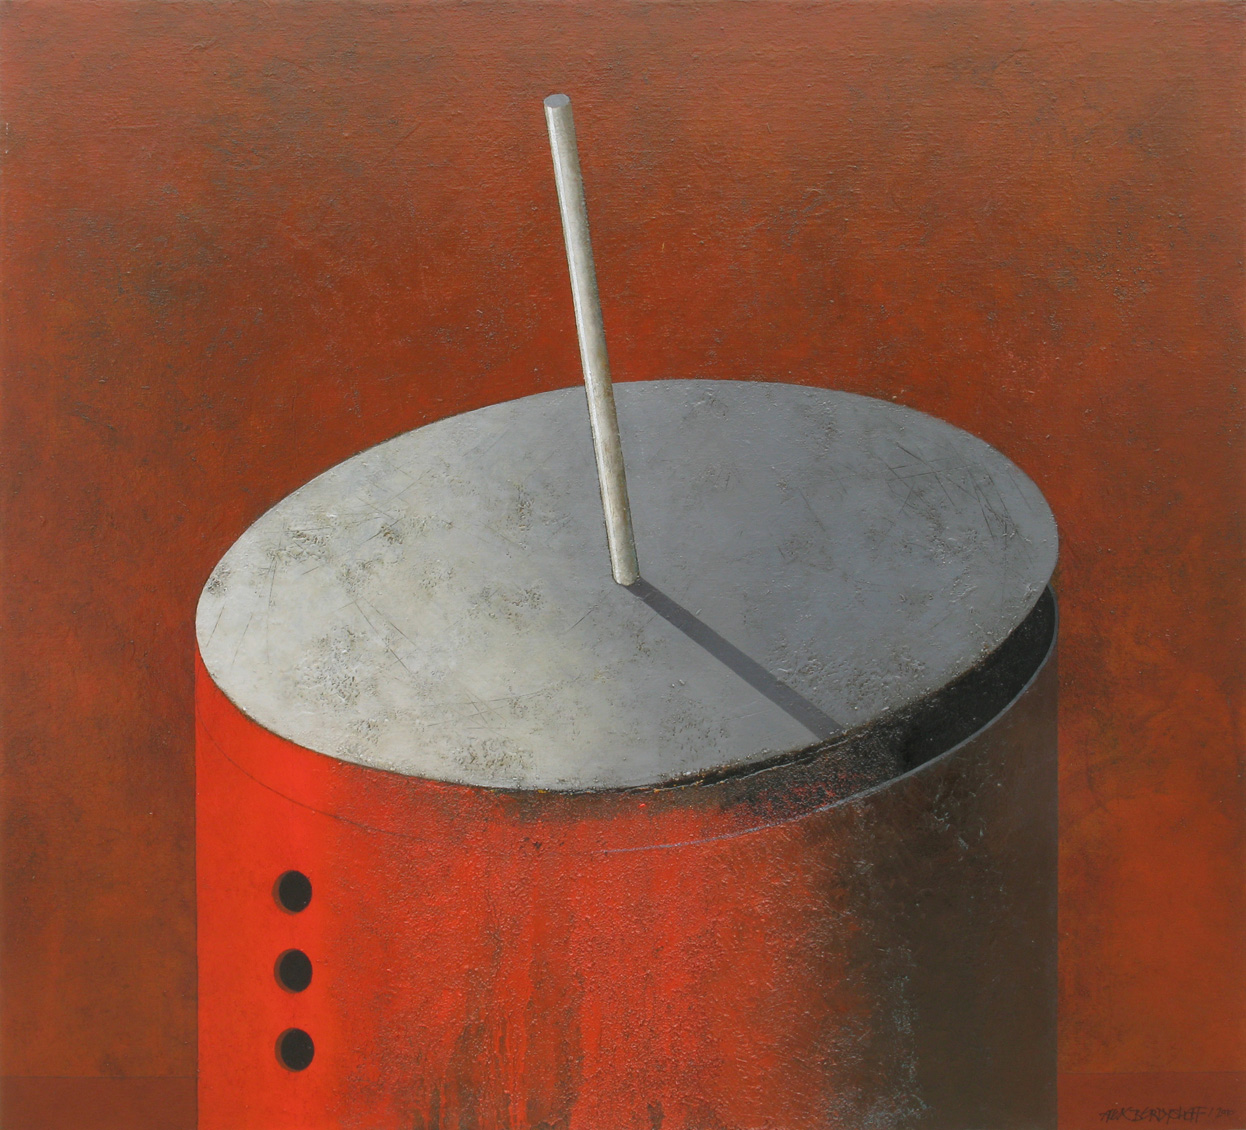 DEVICE, OIL ON CANVAS, 110X120CM, 2010